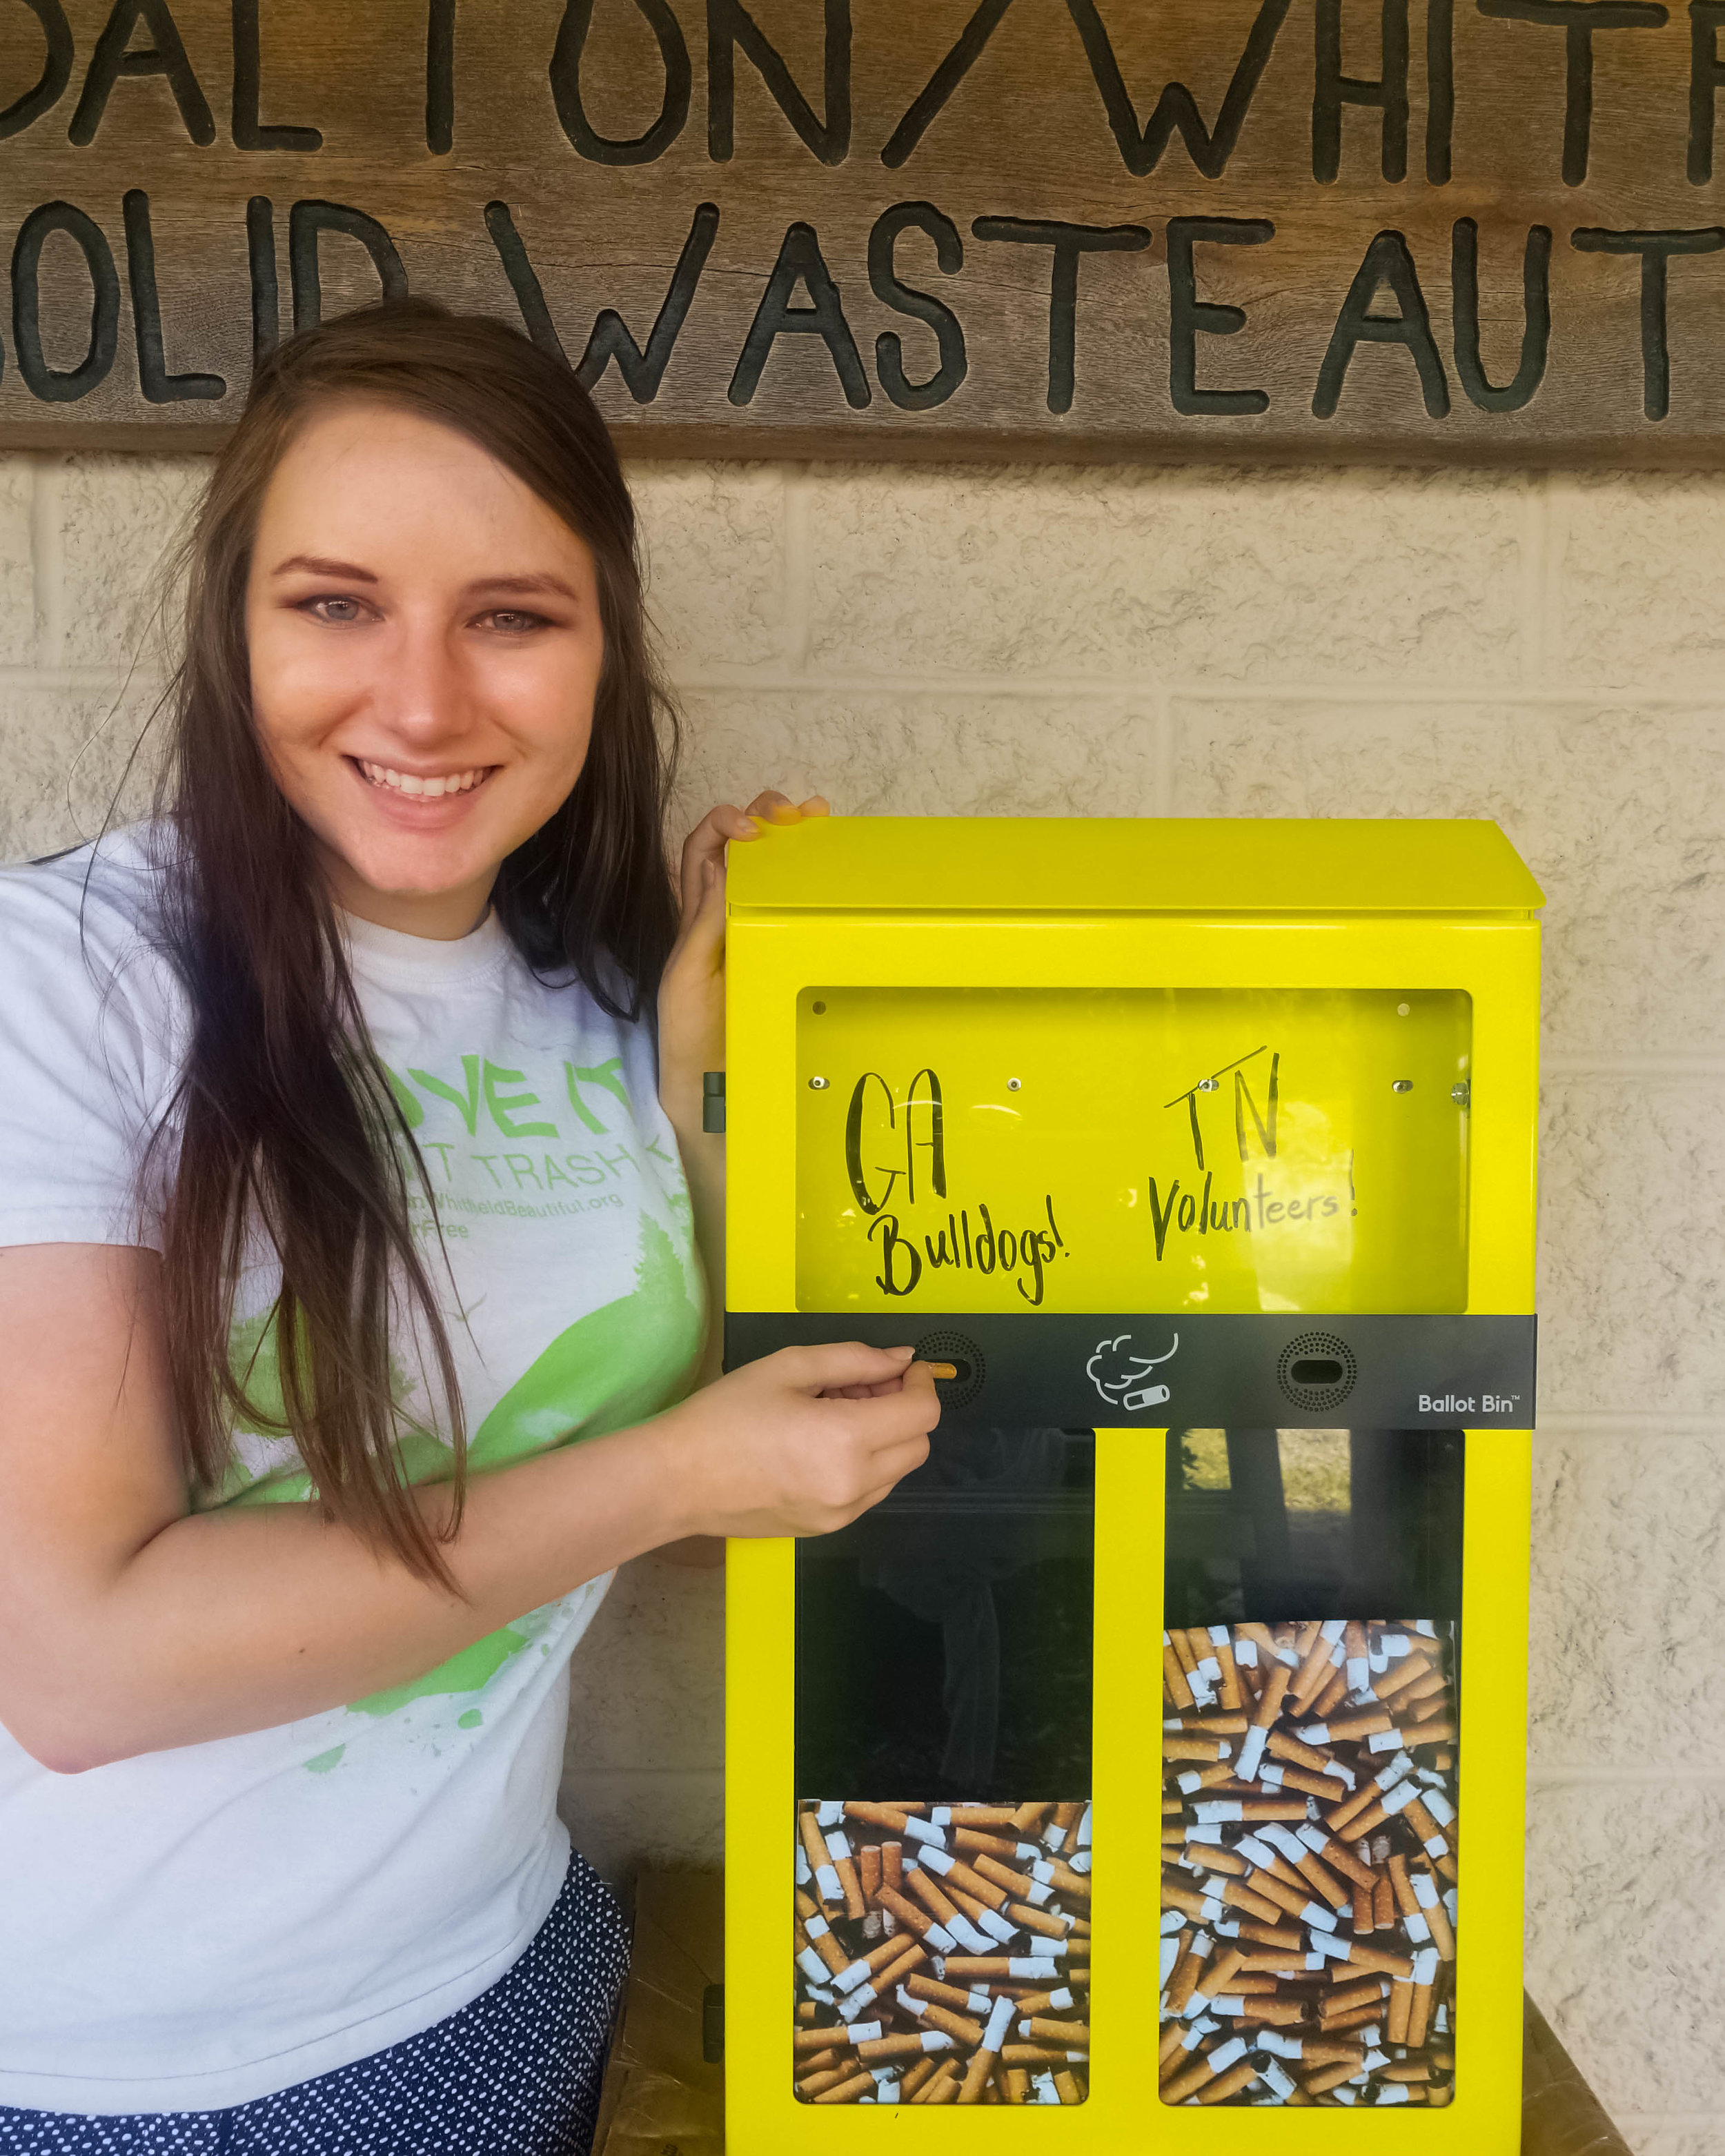 Executive Director, Amy Hartline, poses with one of the specially ordered Ballot Bins to demonstrate how people can vote for one of two options using cigarette litter.